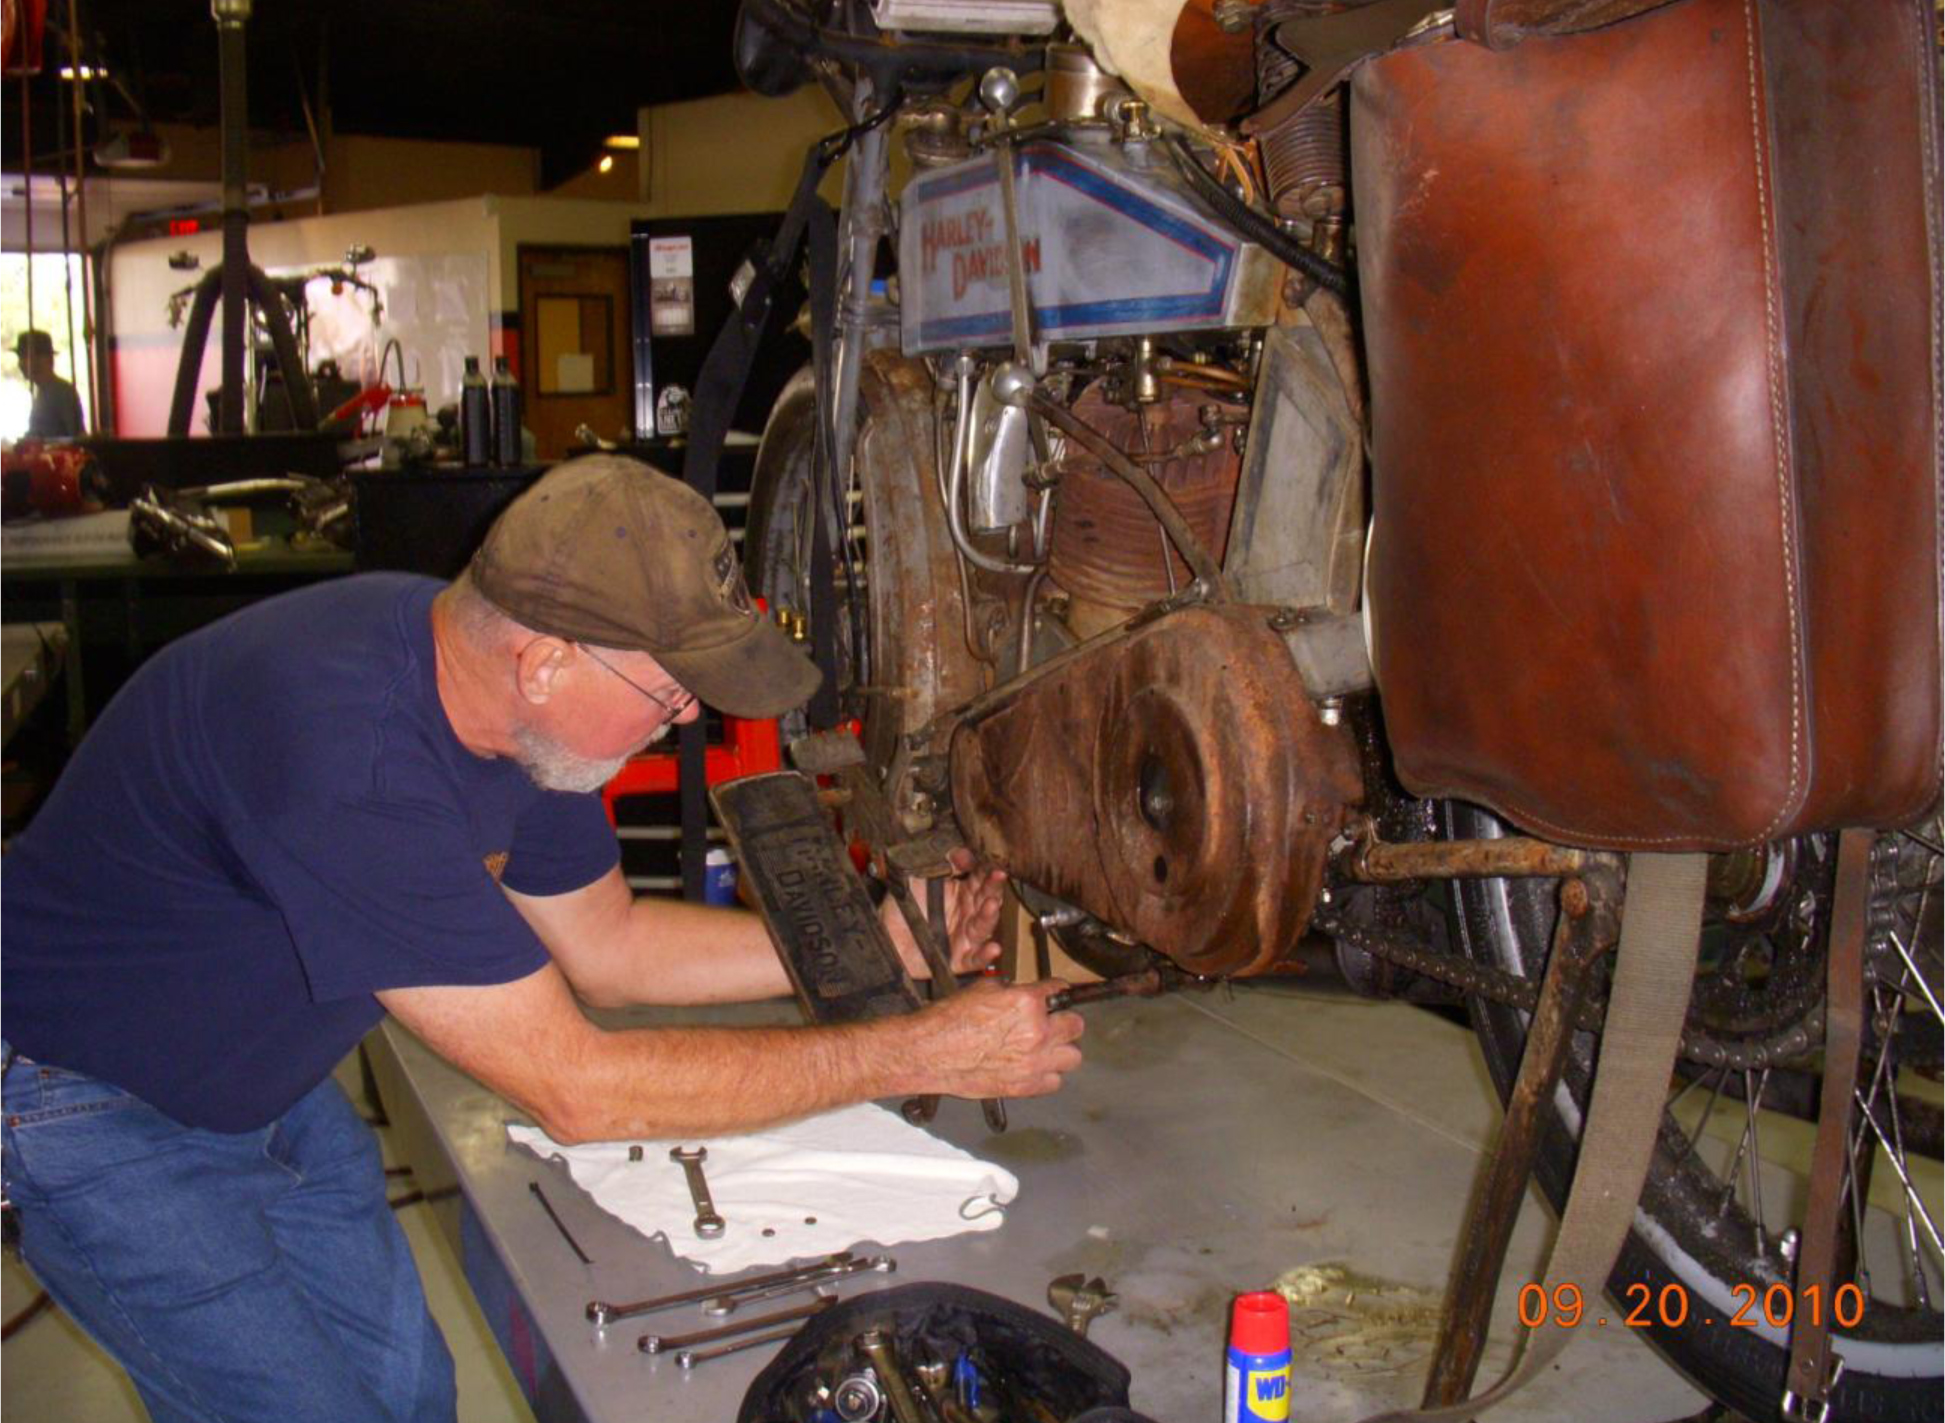 Pigpen wrenches on Buzz Kantor's 1915 Harley during the 2010 Motorcycle Cannonball.